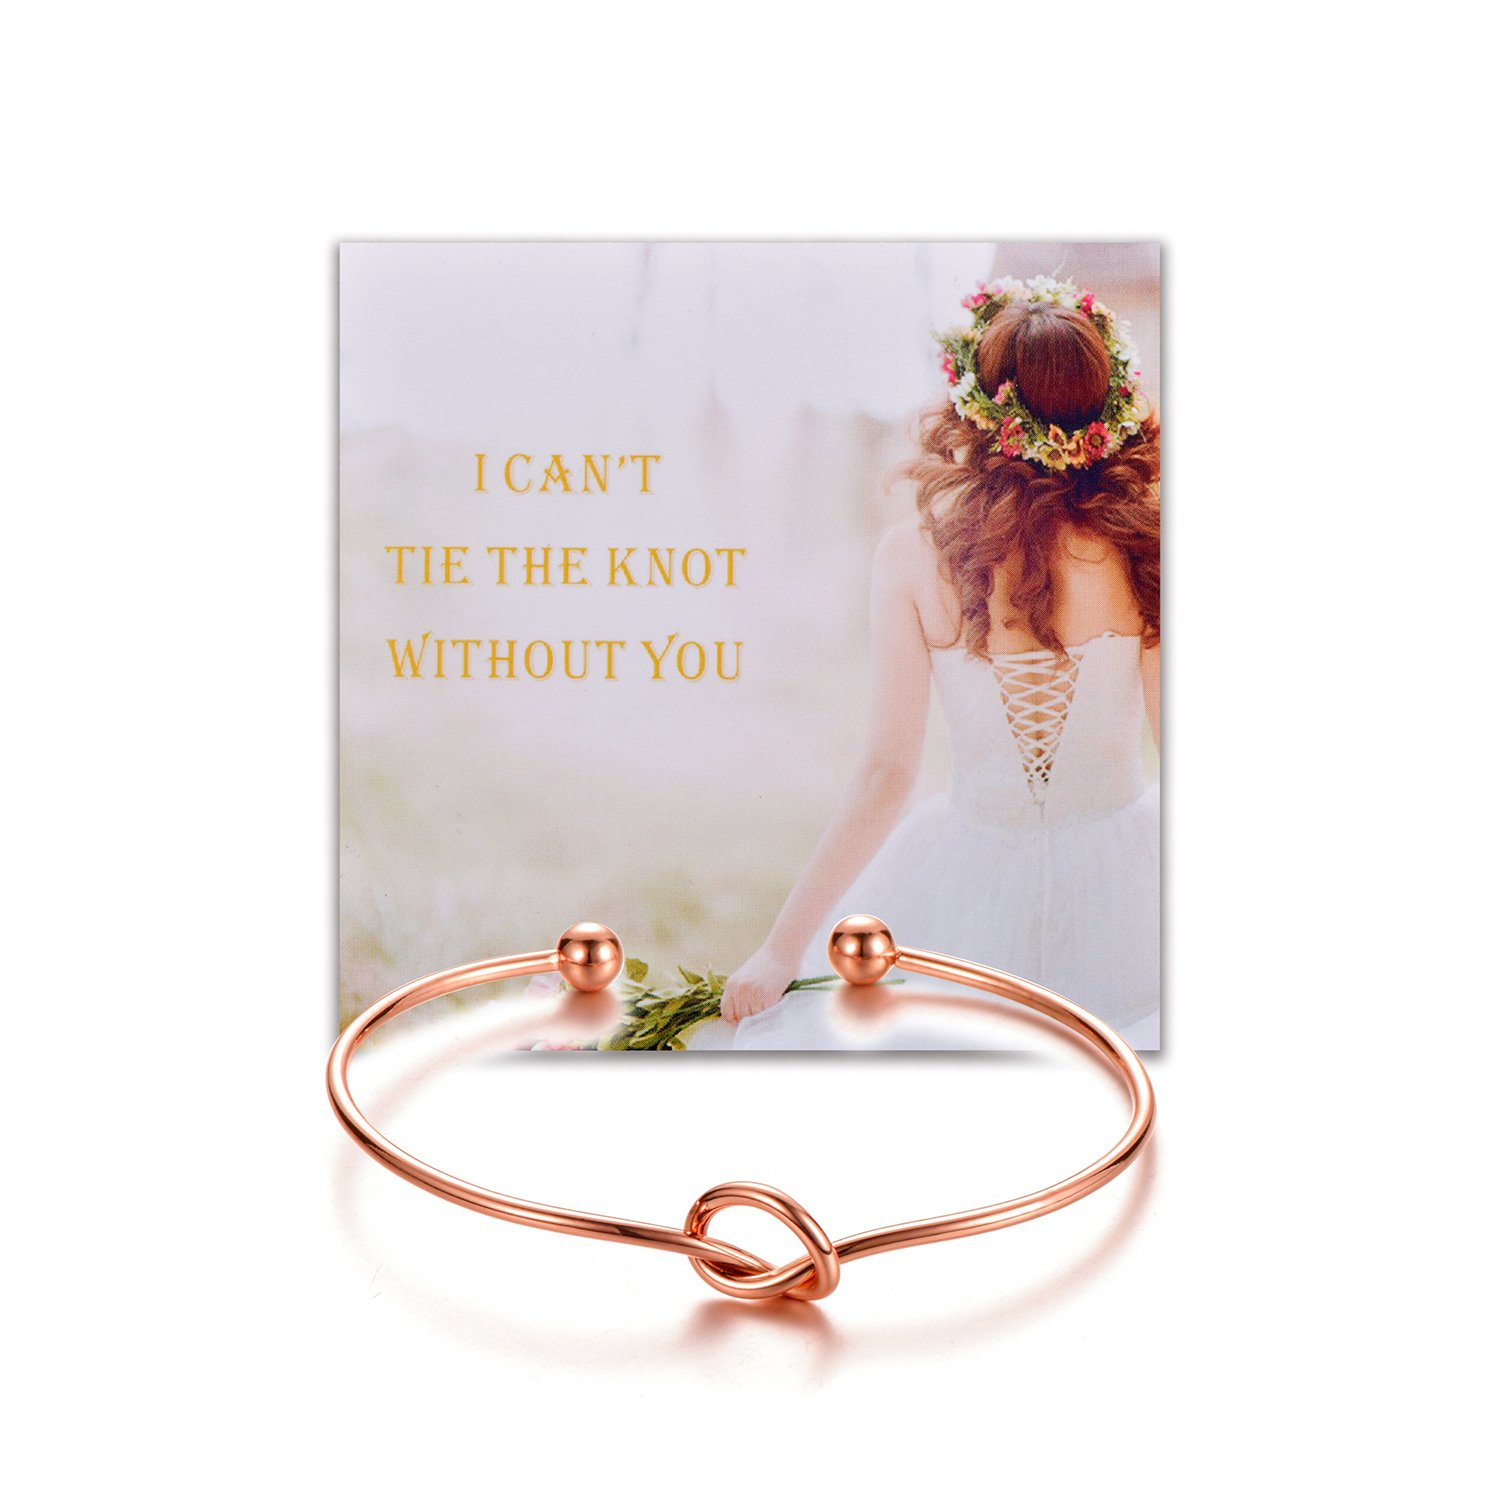 Bridesmaid Gifts Love Knot Bracelets With Warmth Card Gift Rose Gold Tone For Friend Sister Family (6)